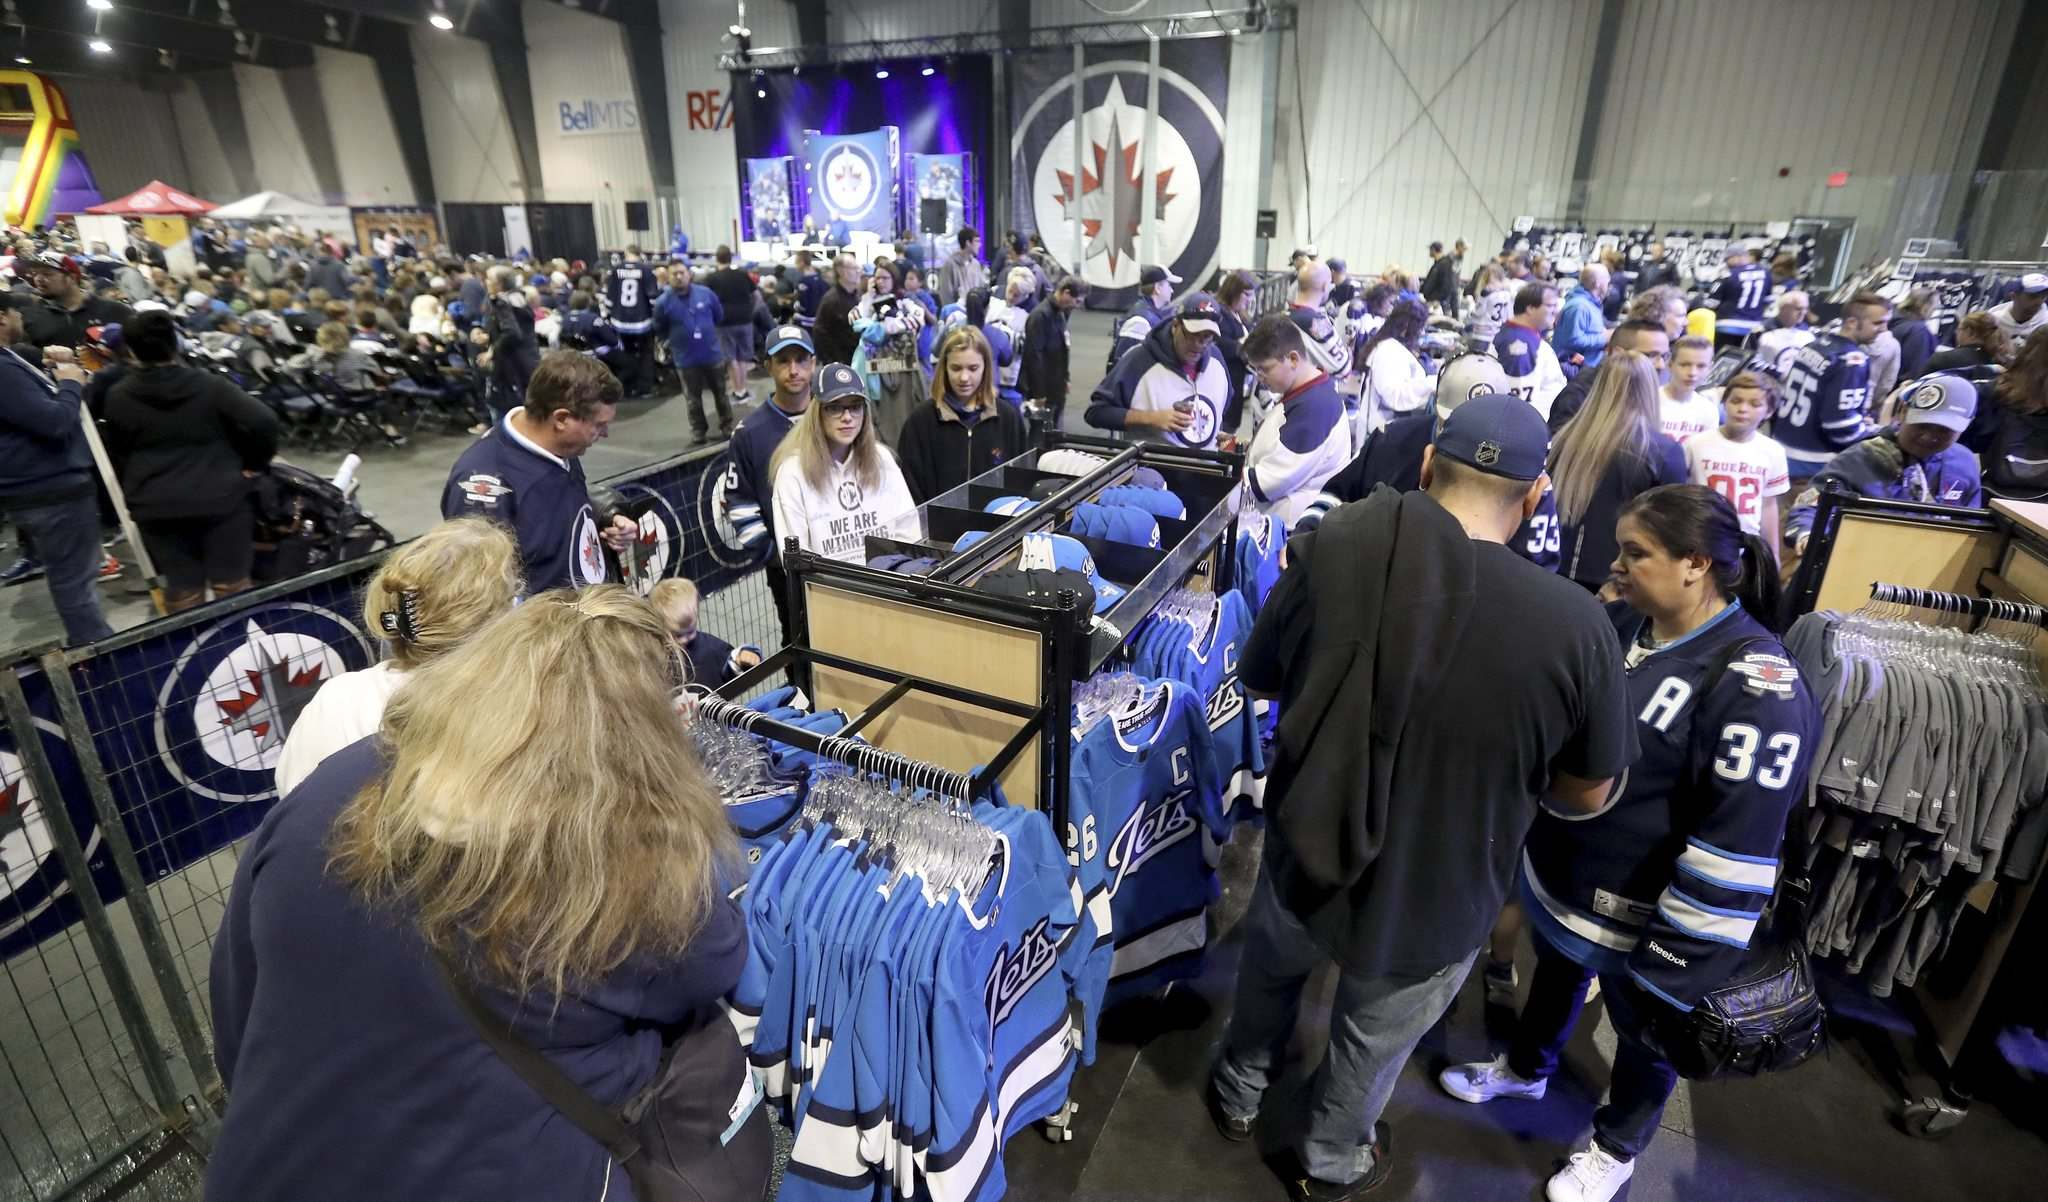 Jets' fans shop for merchandise this morning at Fan Fest.